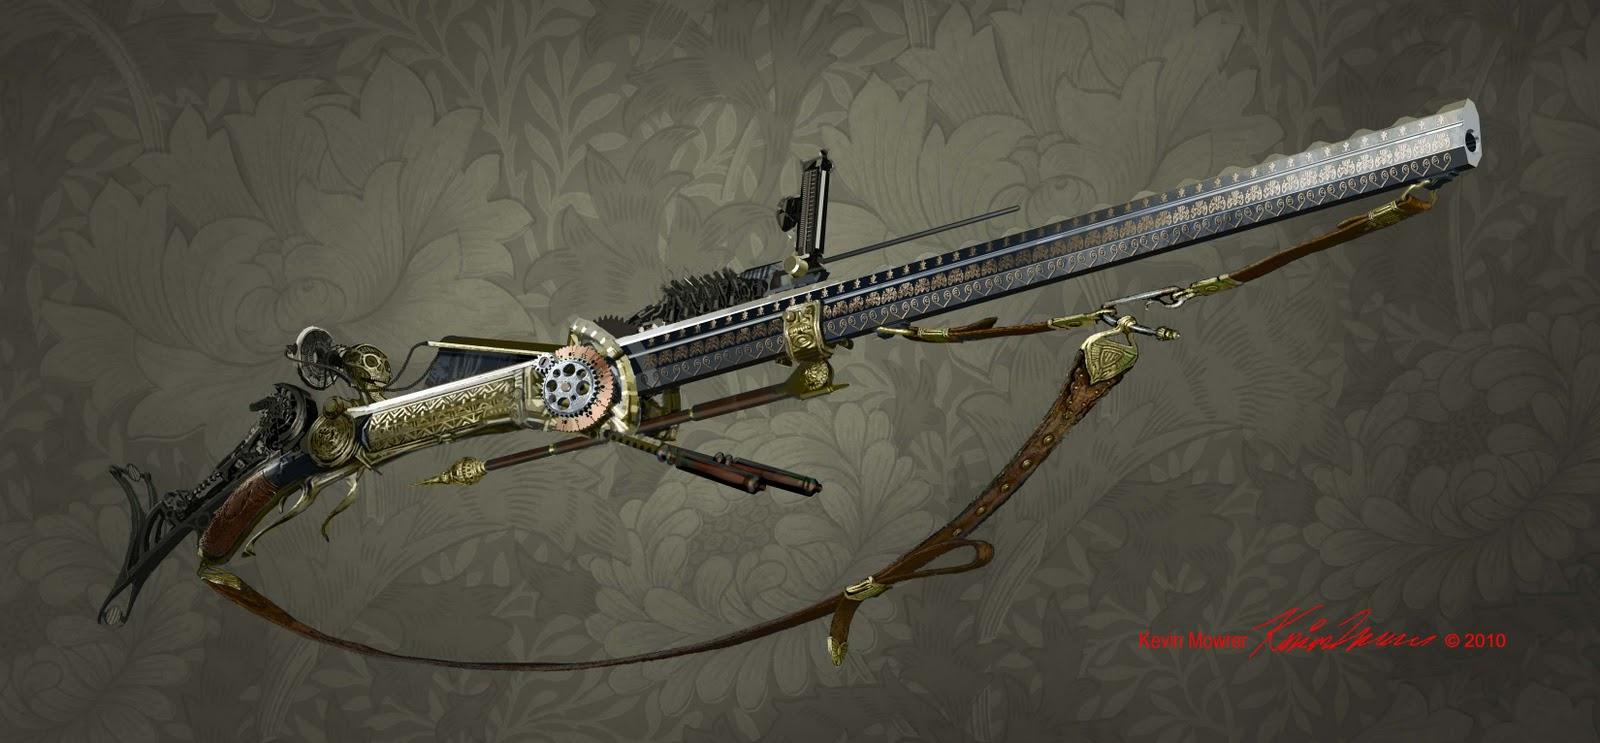 [Trama Grupo A] Ancient Wrath of 4 Arms Steampunk%20Aether%20rifle%20in%20progress%20V3